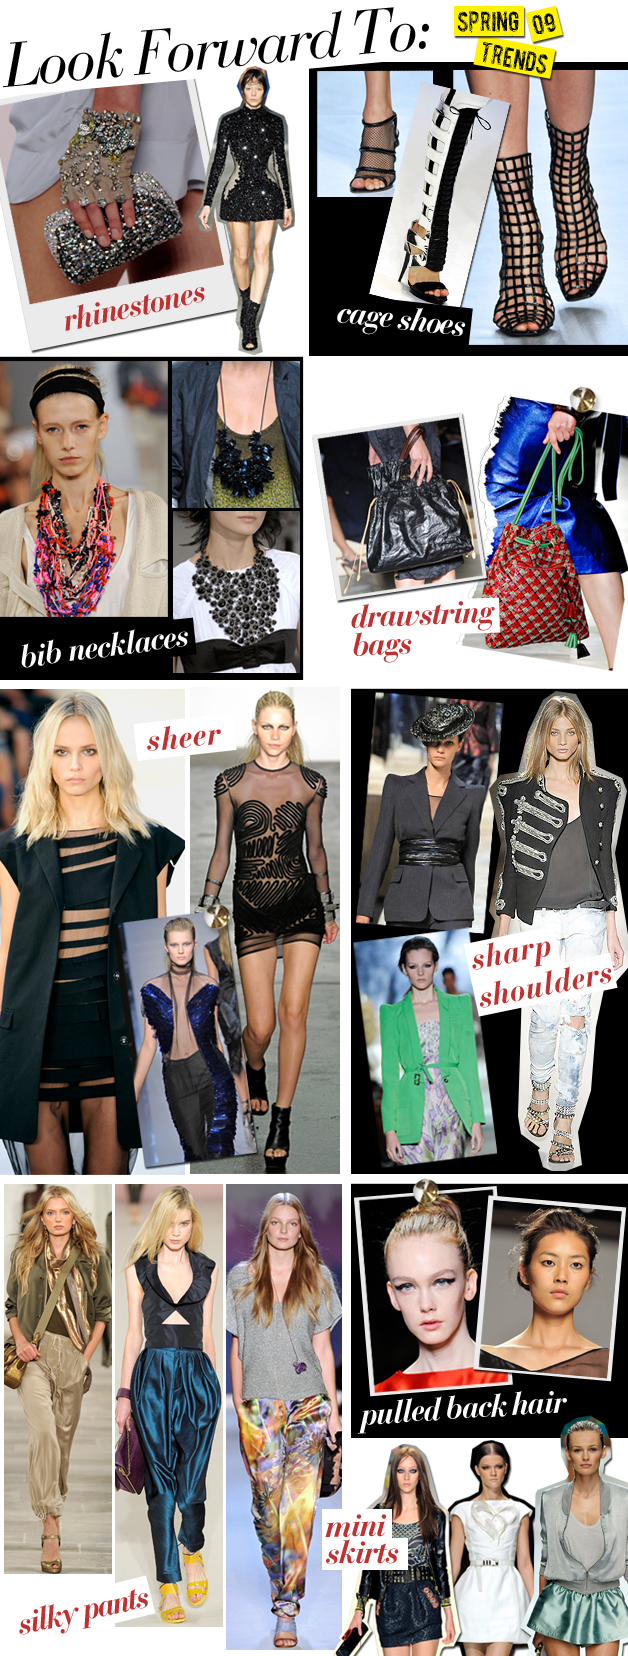 look-forward-to-spring-09-trends2b1